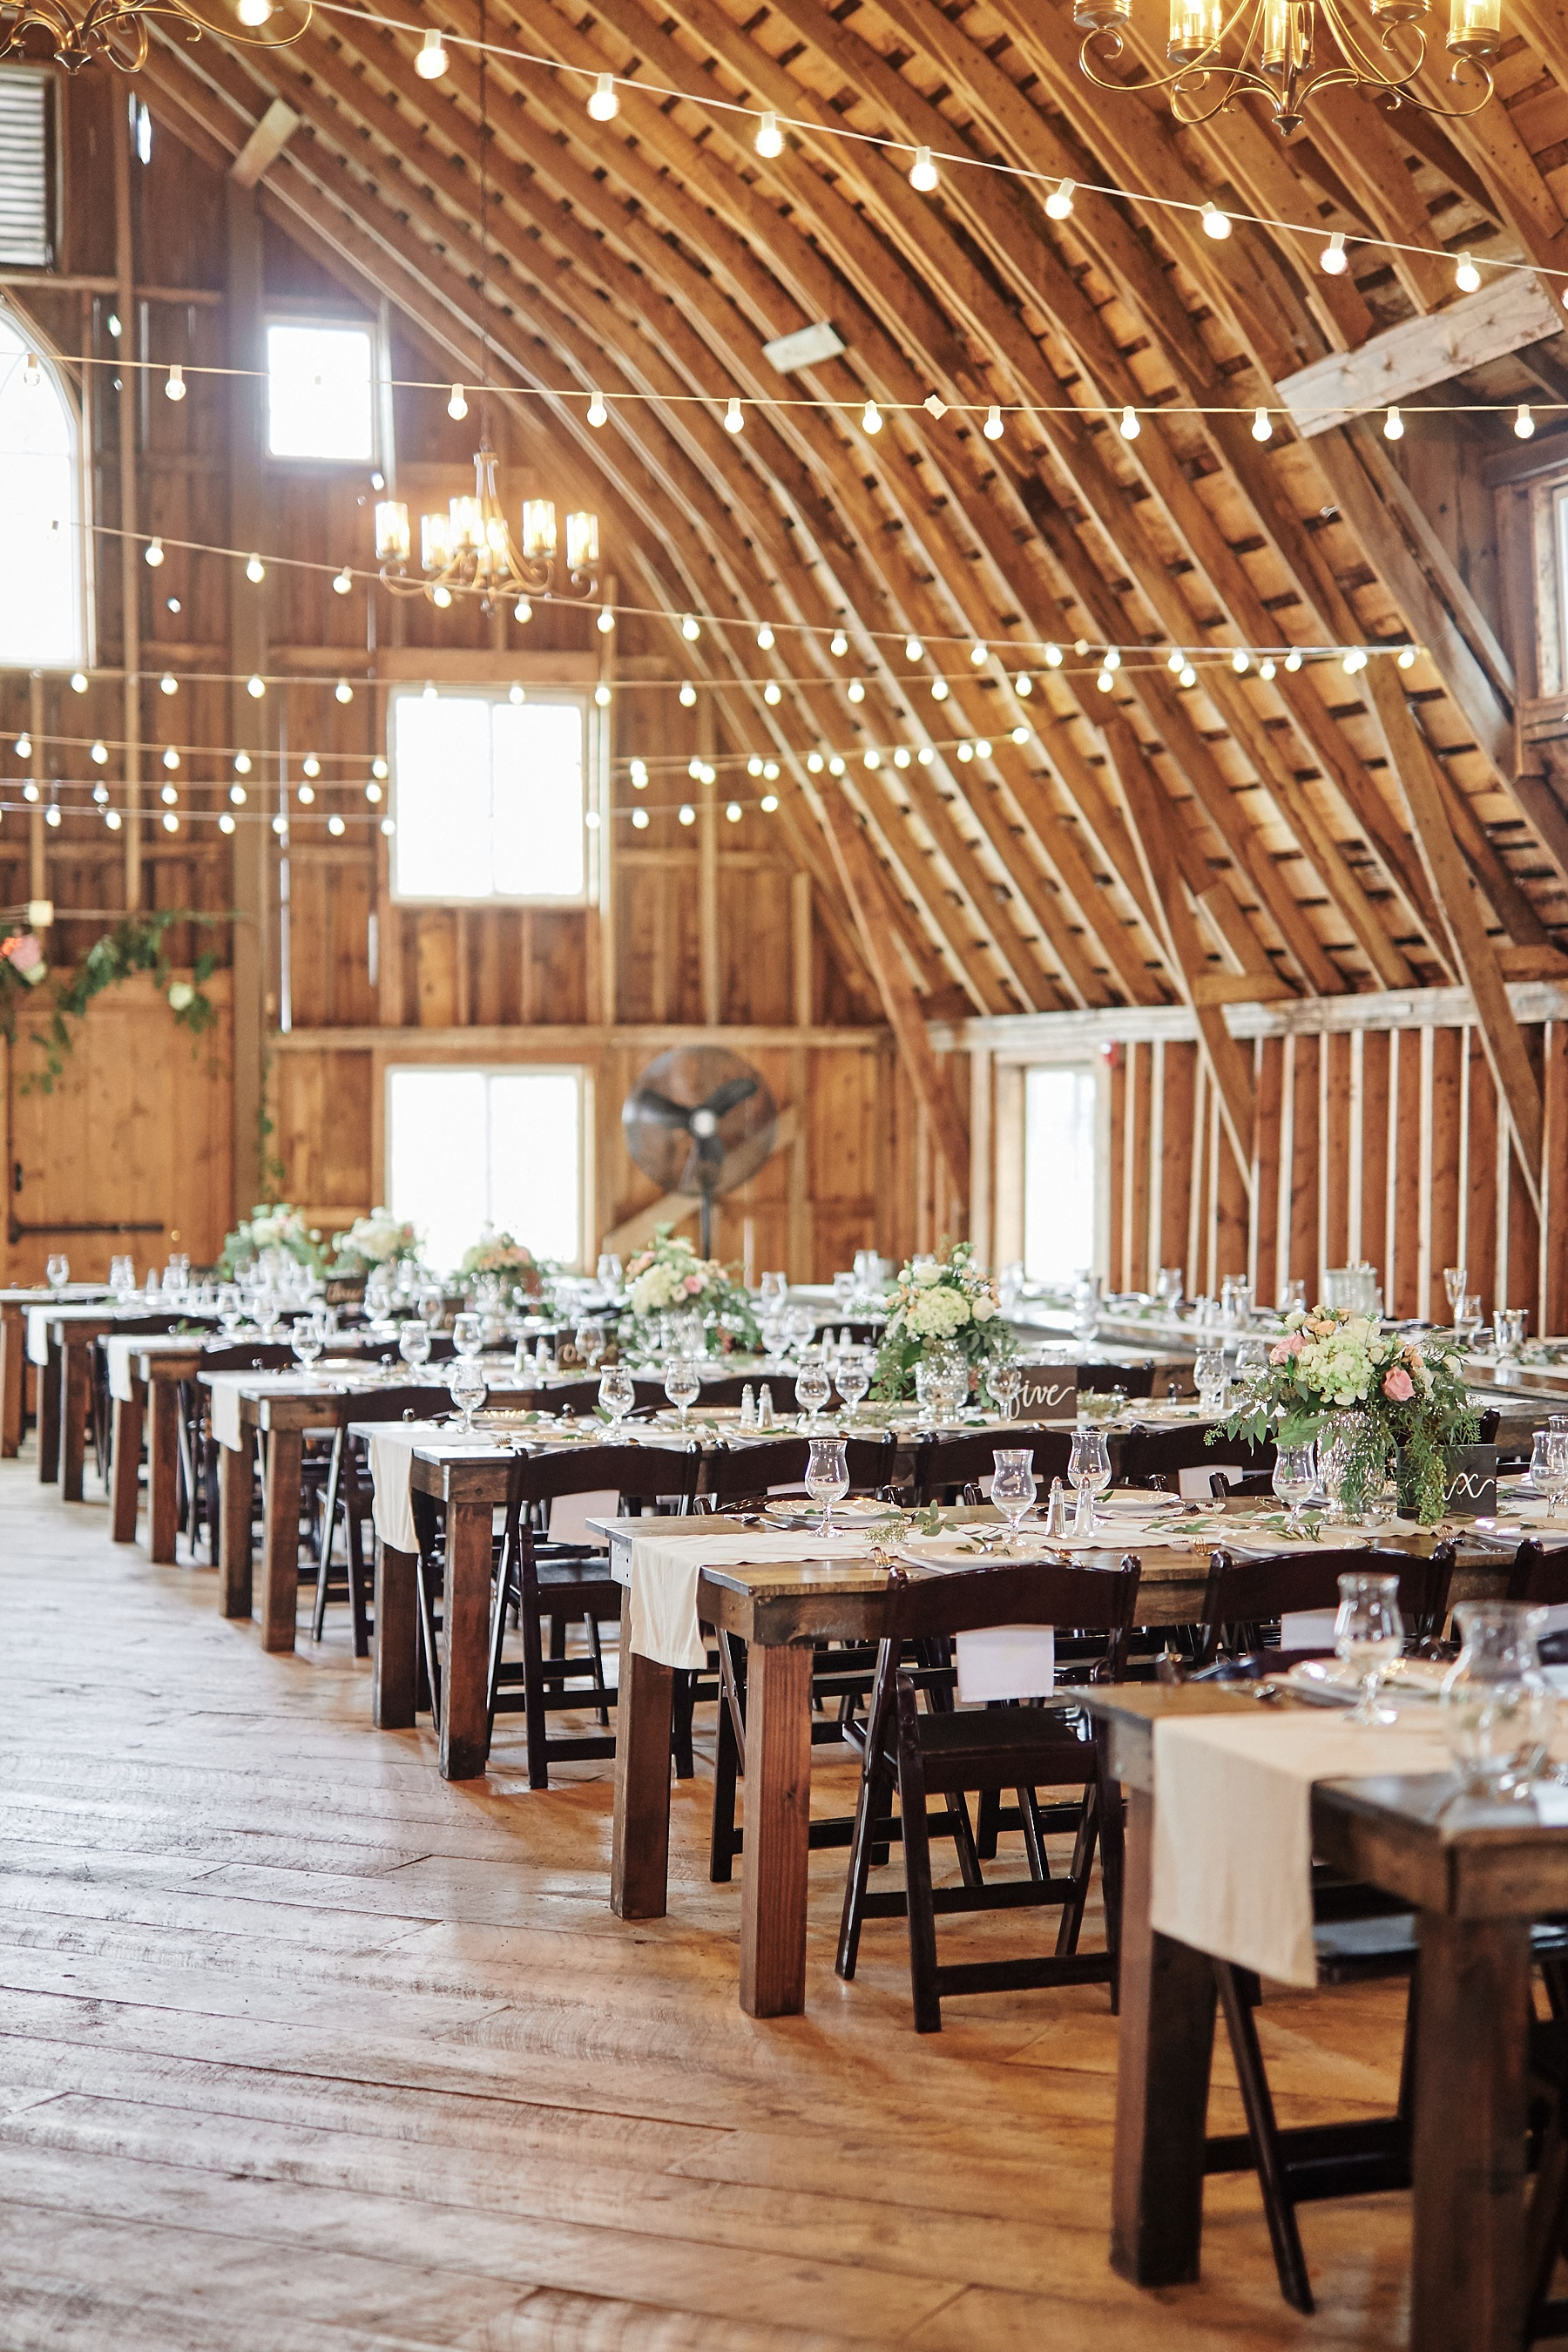 Bloom-Lake-Barn-Wedding-Schafer-Minnesota-Outdoor_0259.jpg